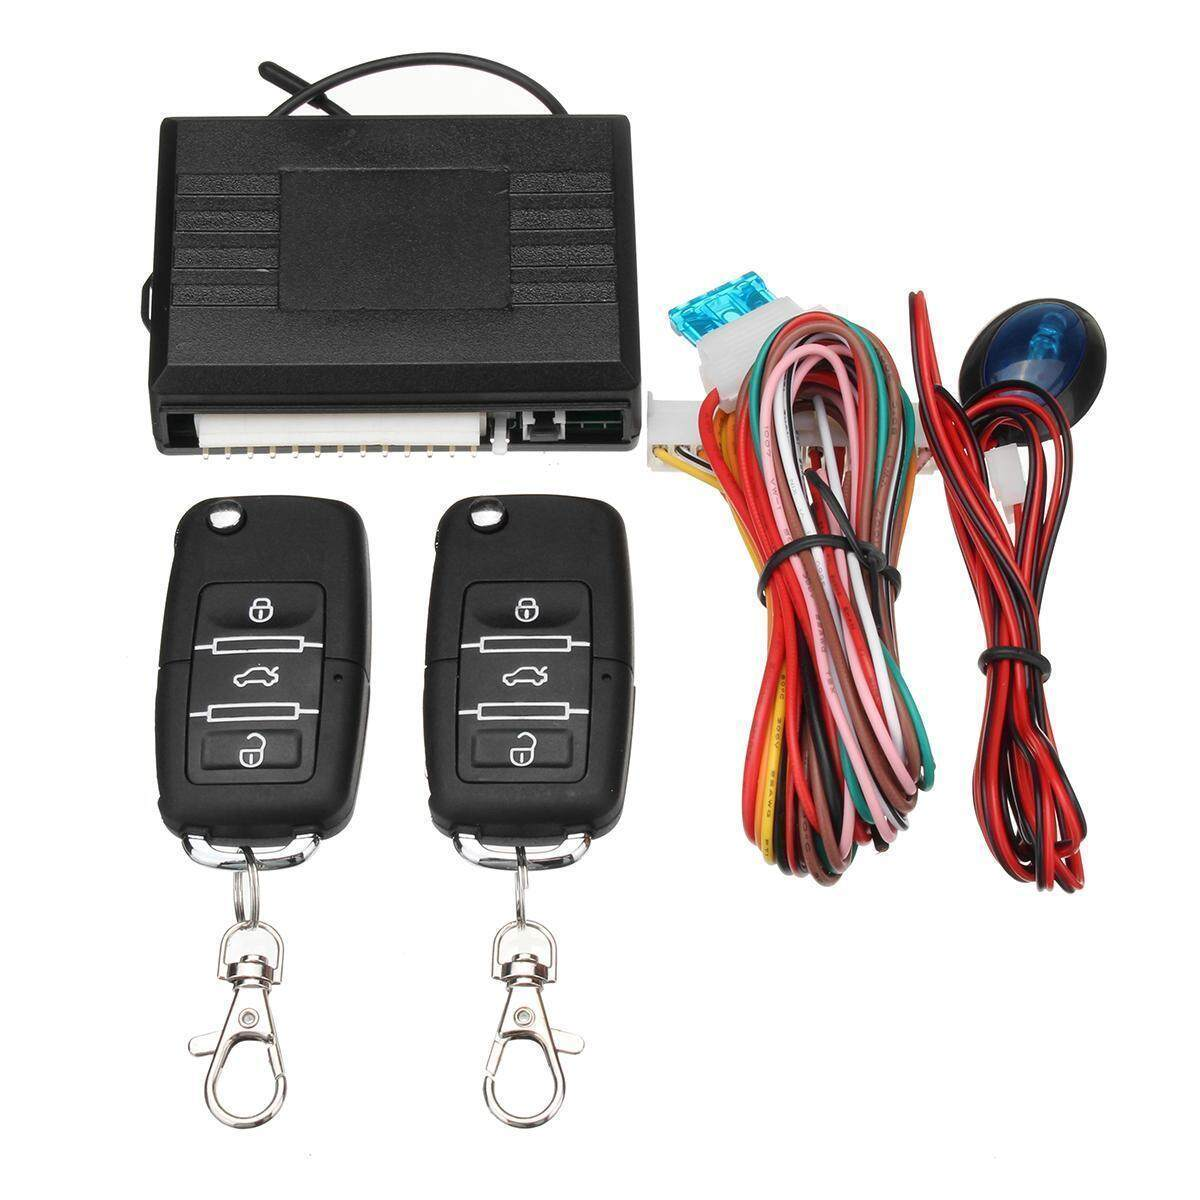 product details of remote control central door lock kit keyless entry  system for vw golf mk4 mk5